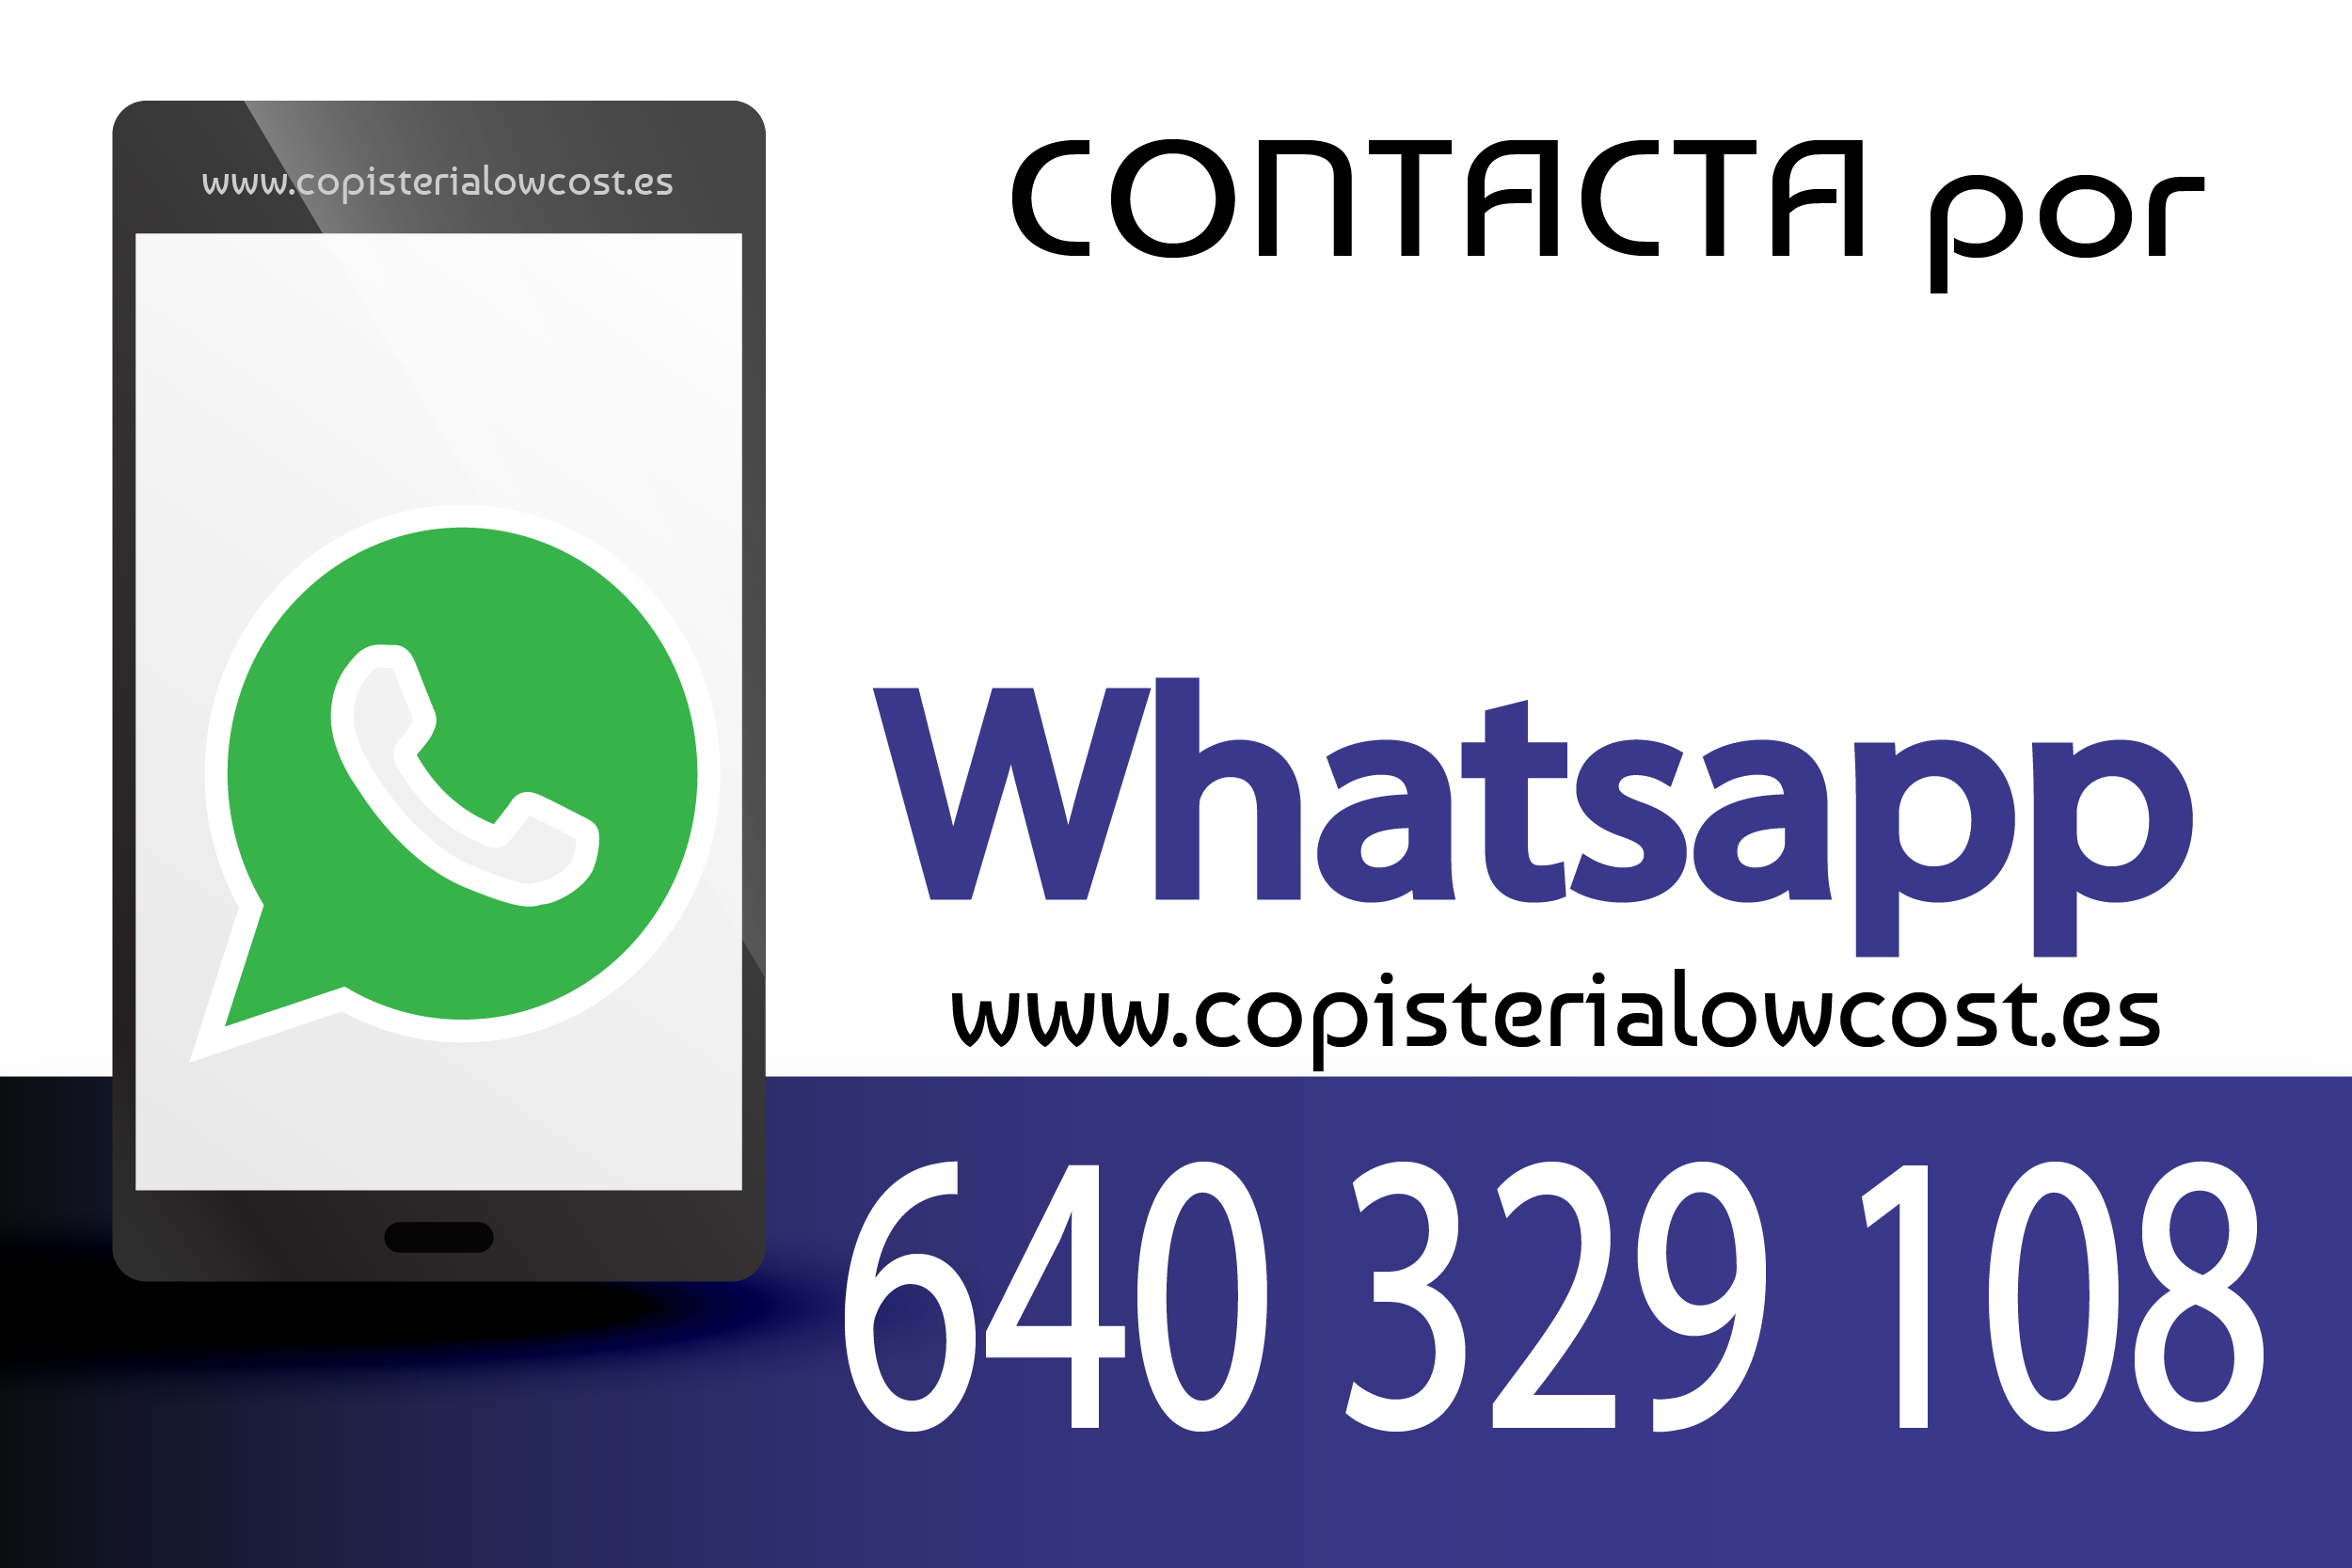 Whatsapp_Copisteria-lowcost